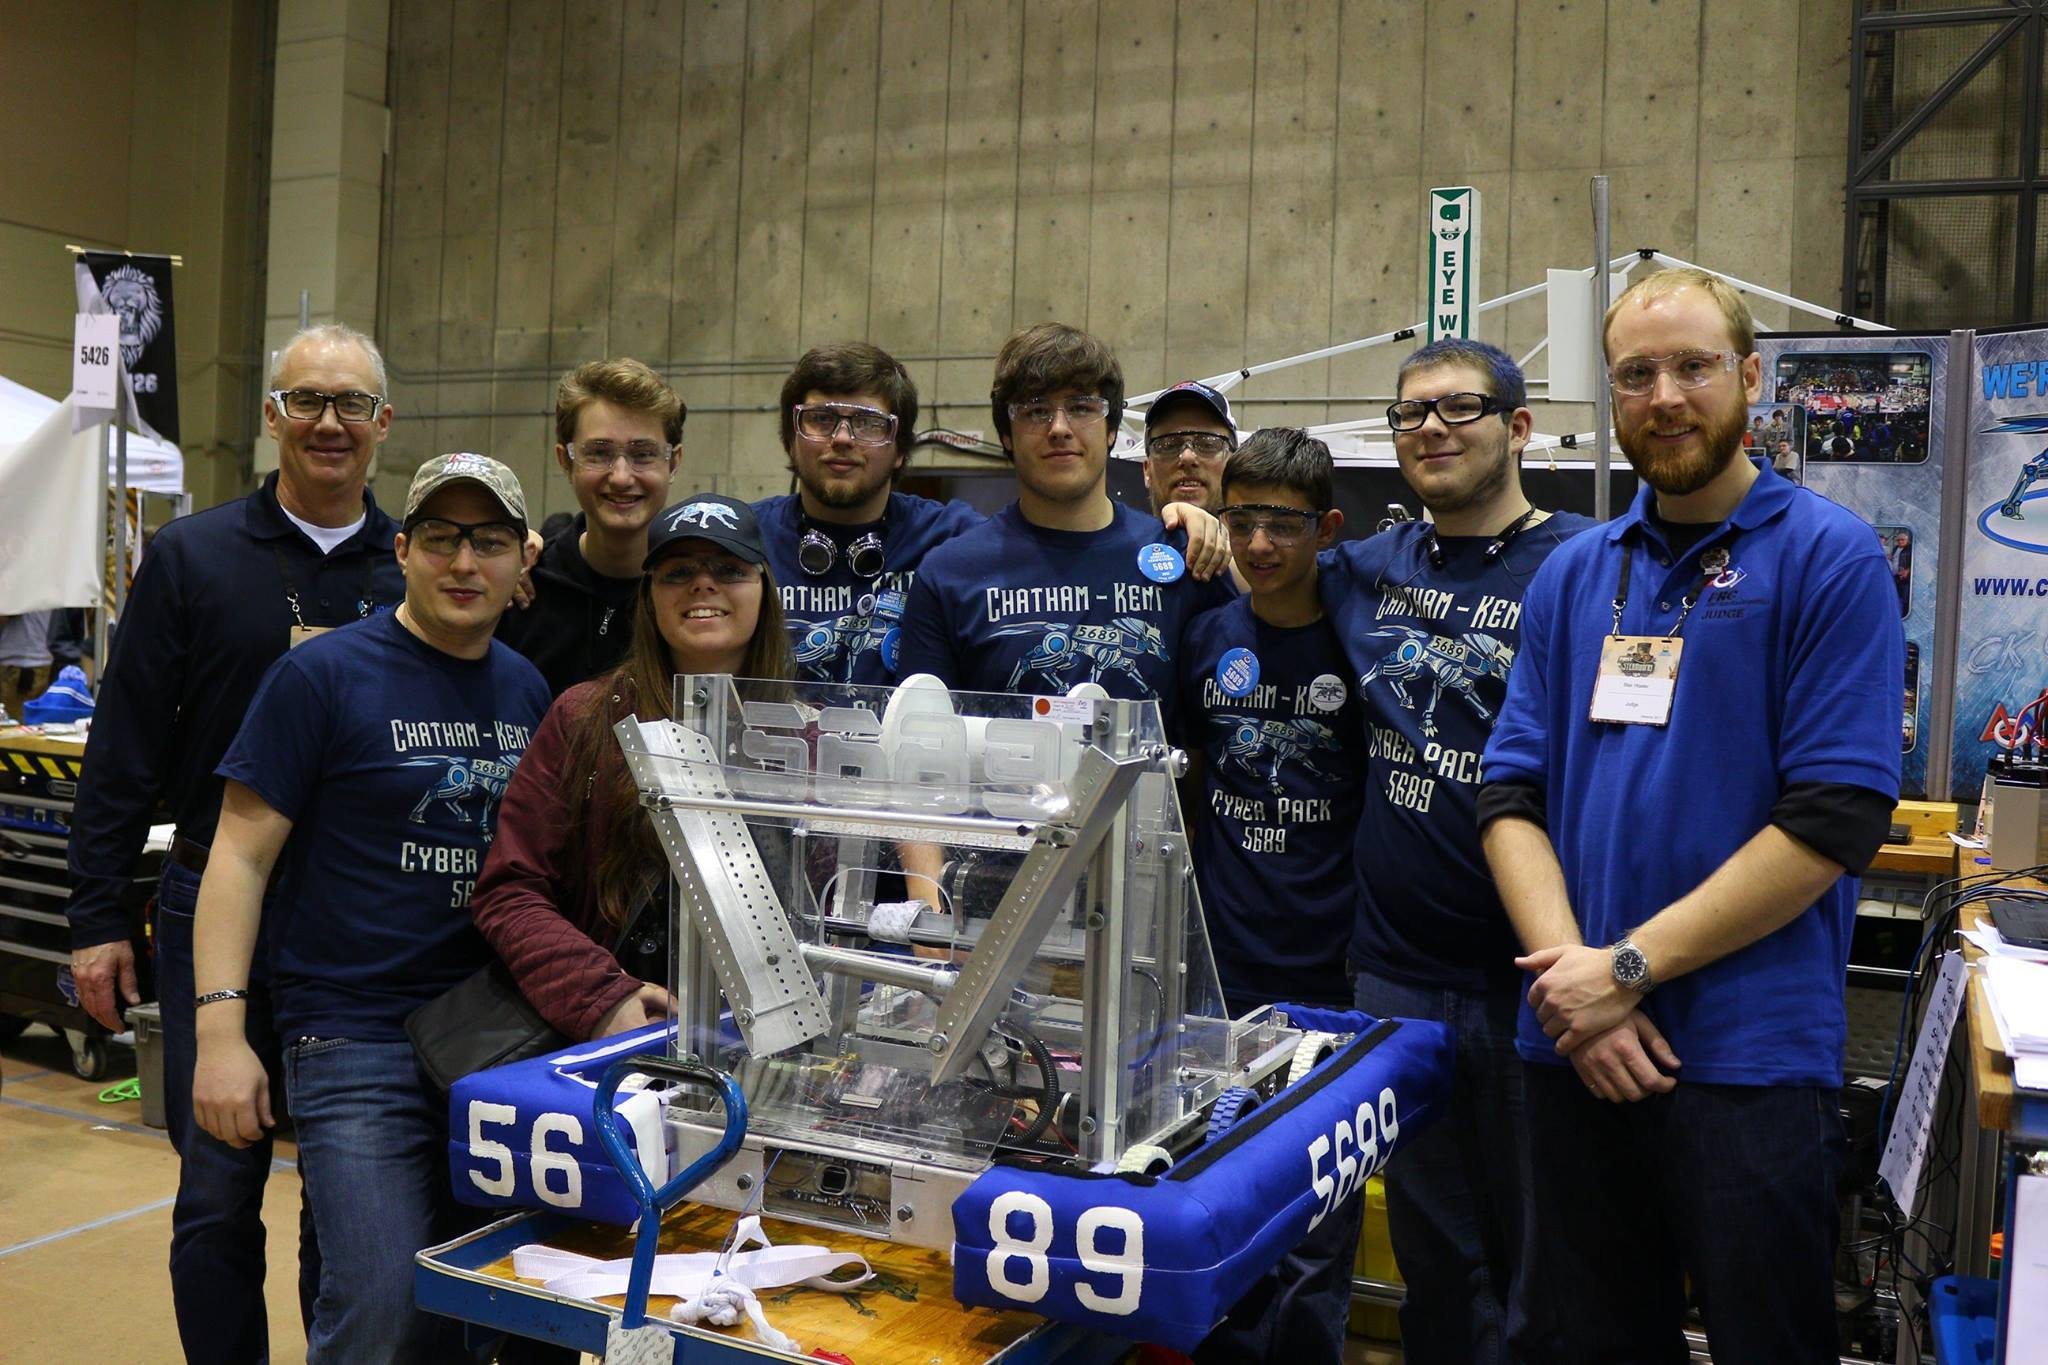 CK Cyber Pack Gets Ready For Another Competition